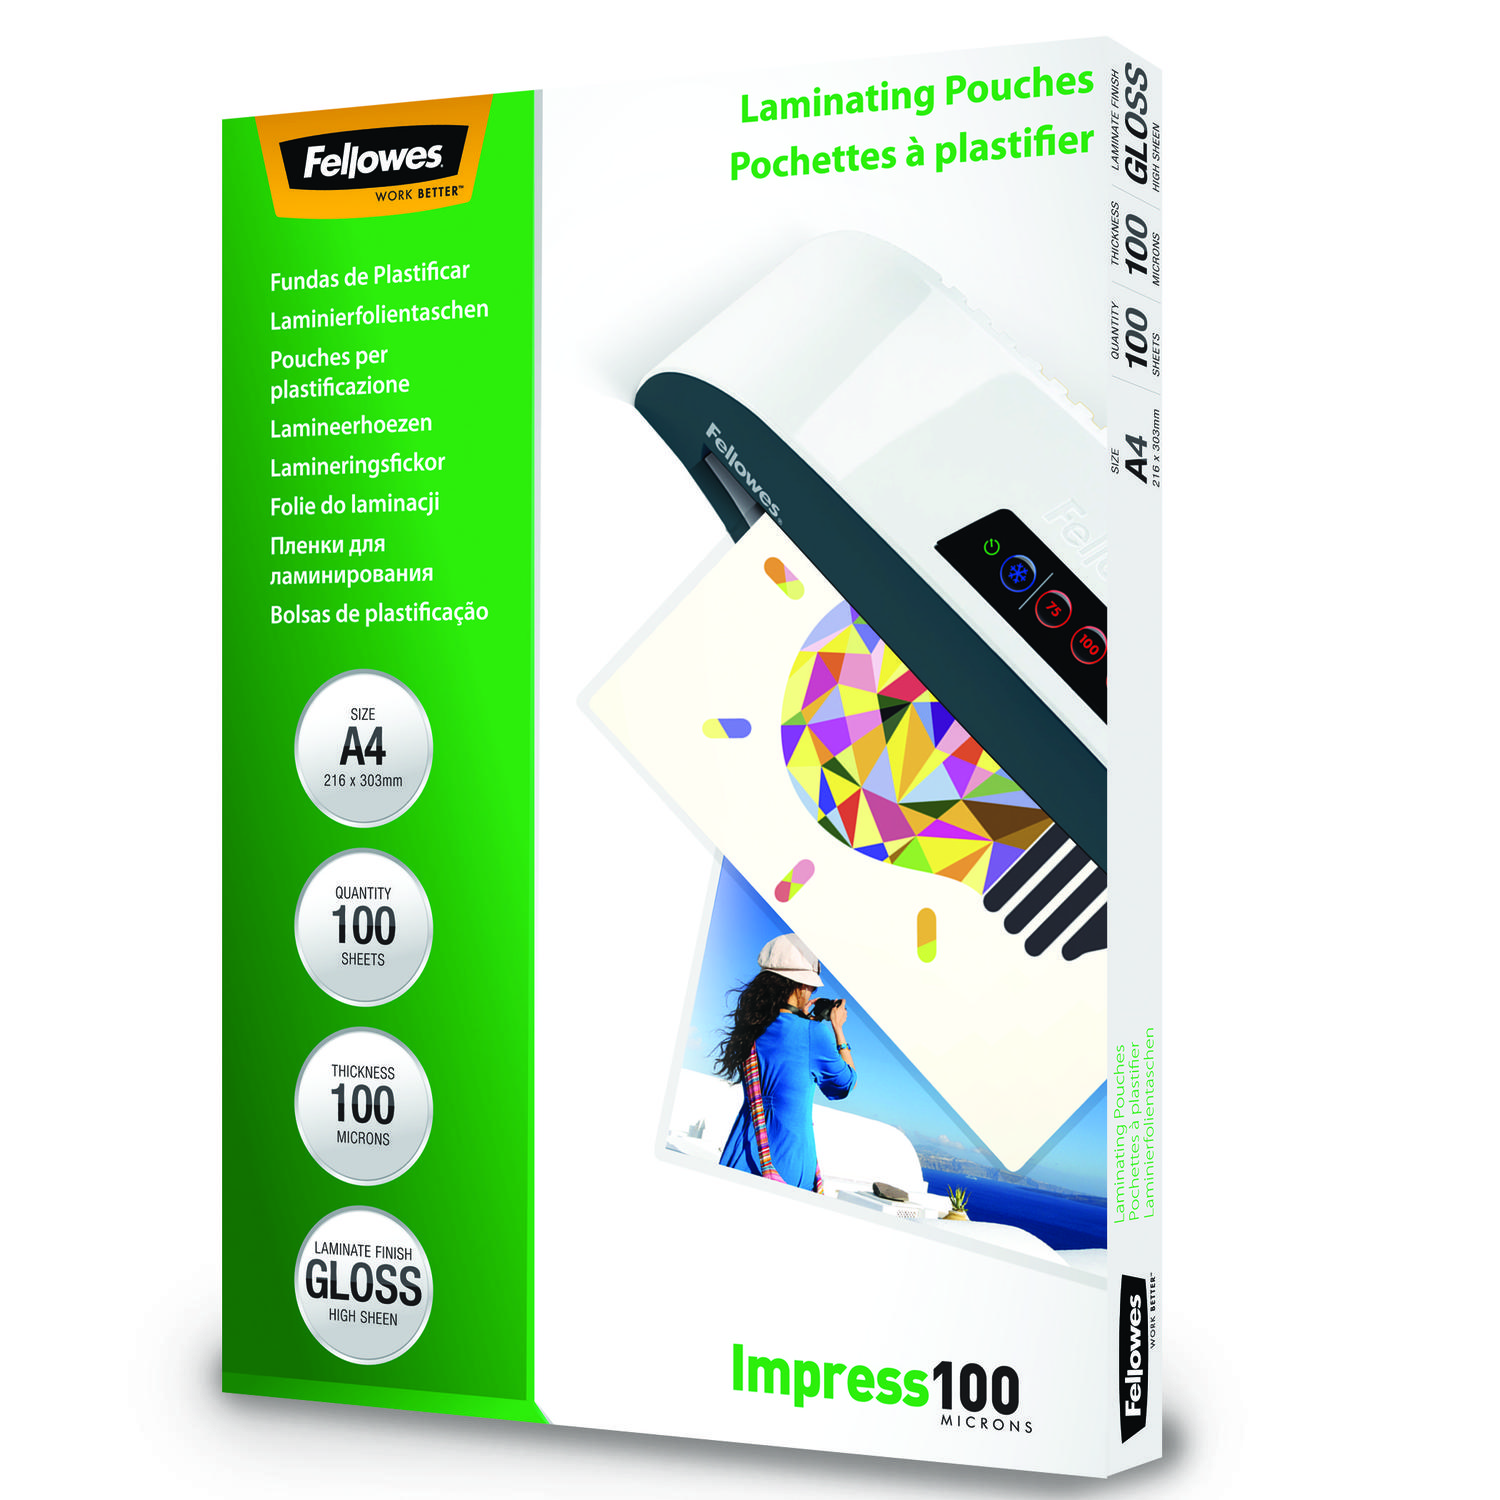 Laminating Film & Pockets Fellowes Laminating Pouch A4 2x100 micron 5351111 (PK100)